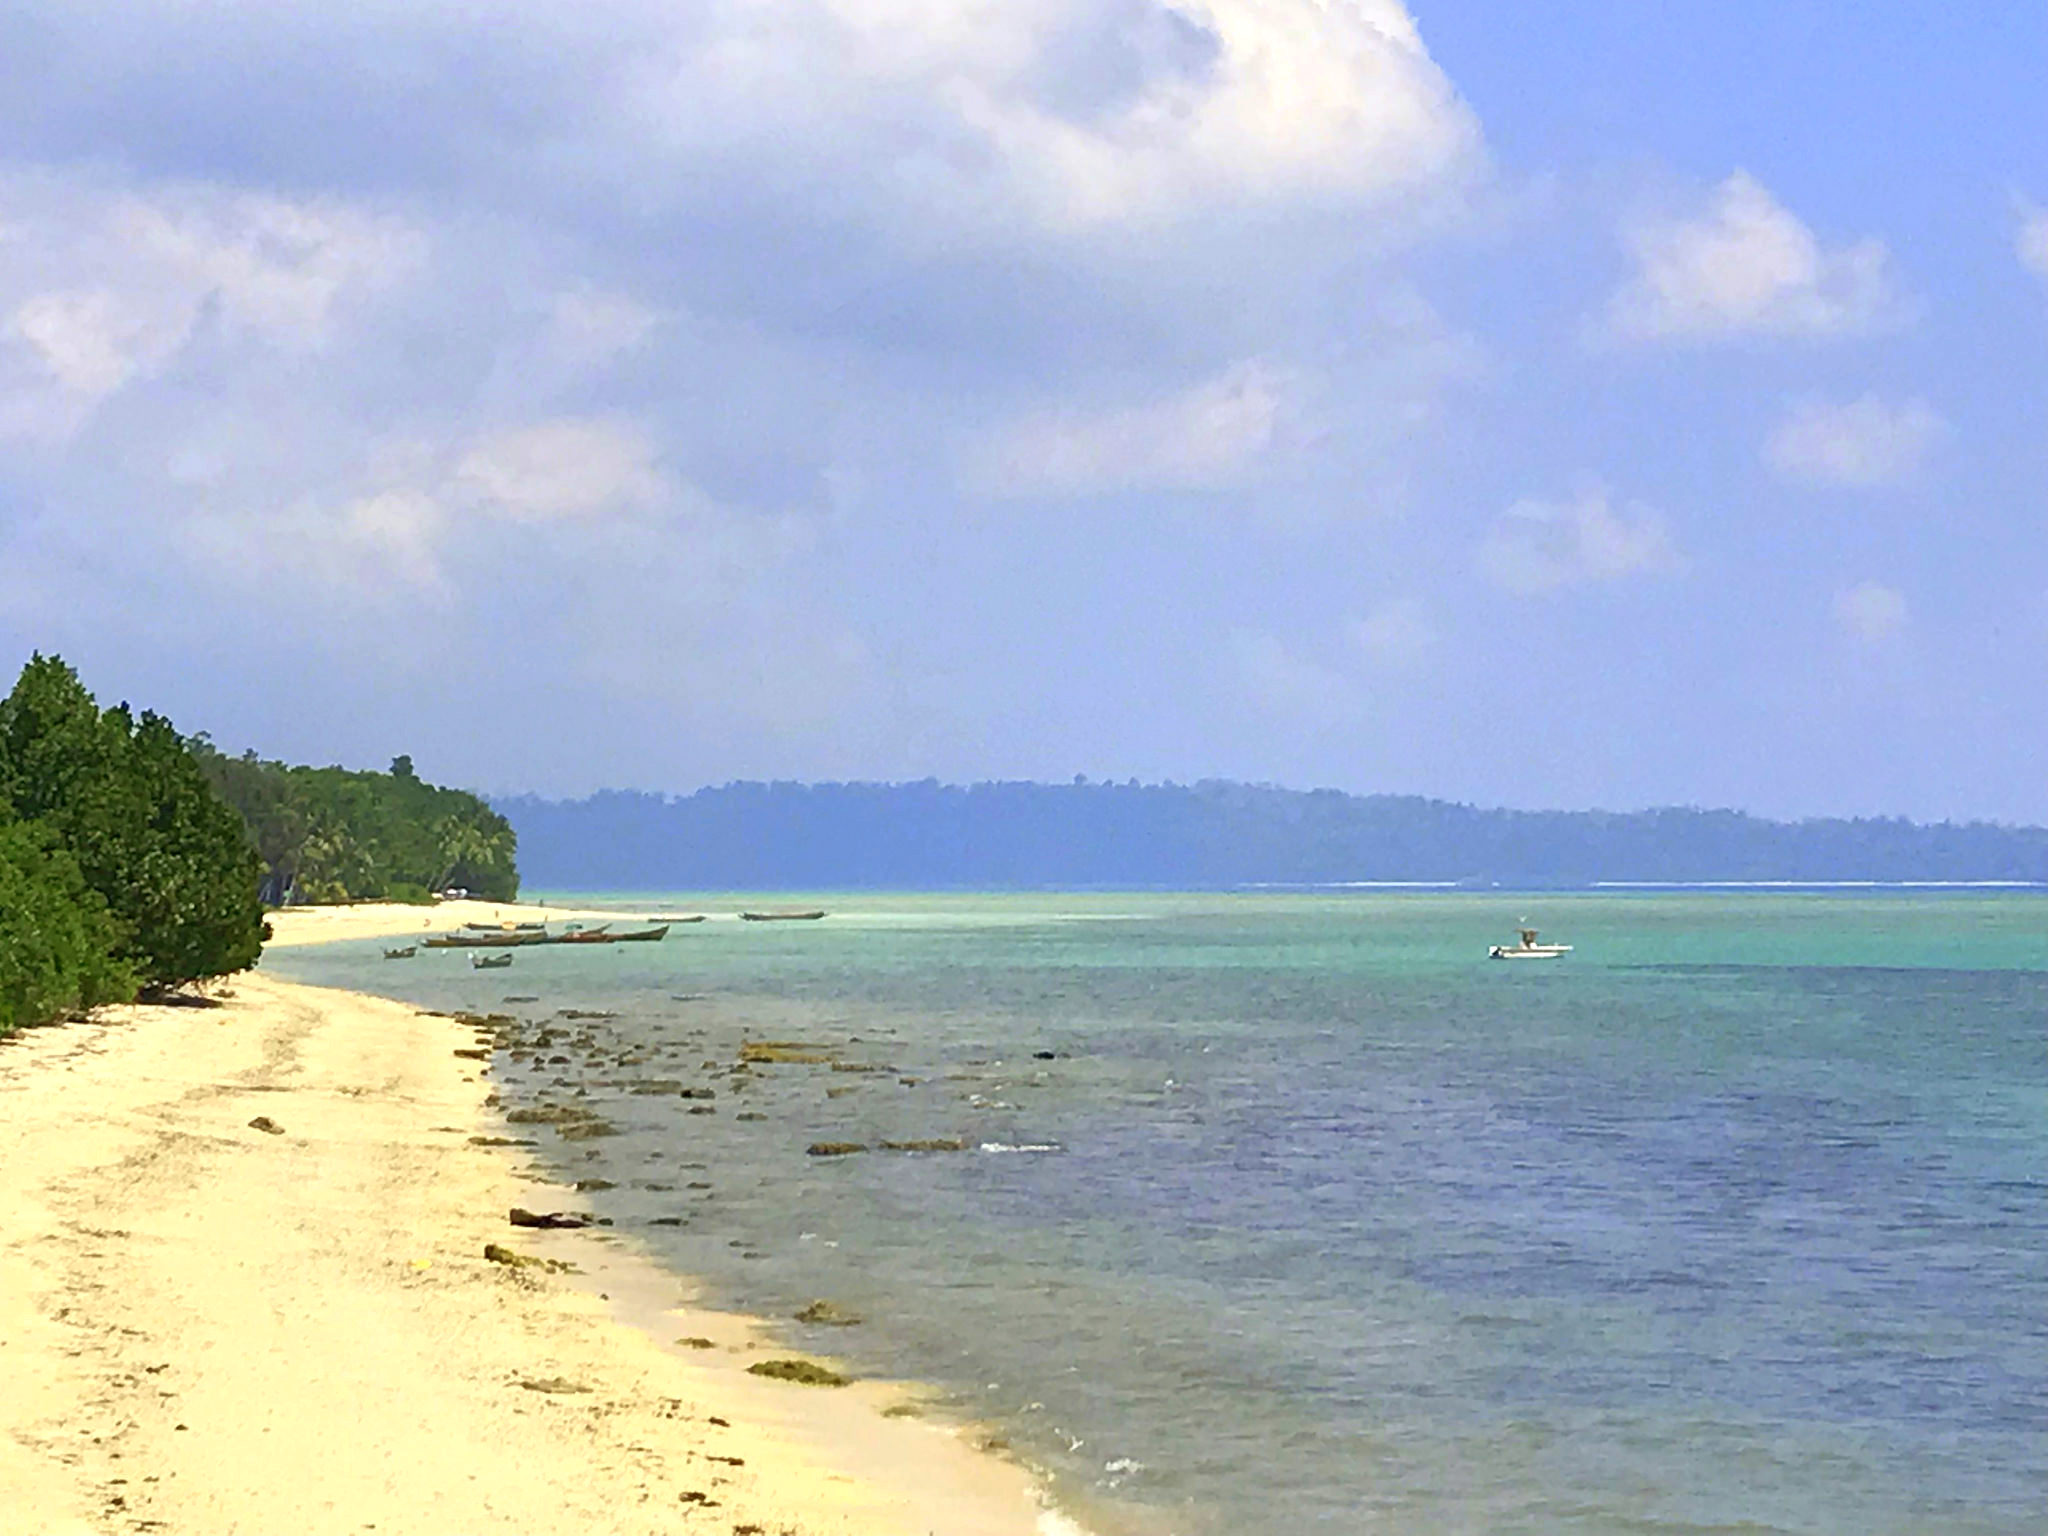 Diving is one of the popular activities on a Havelock Island holiday